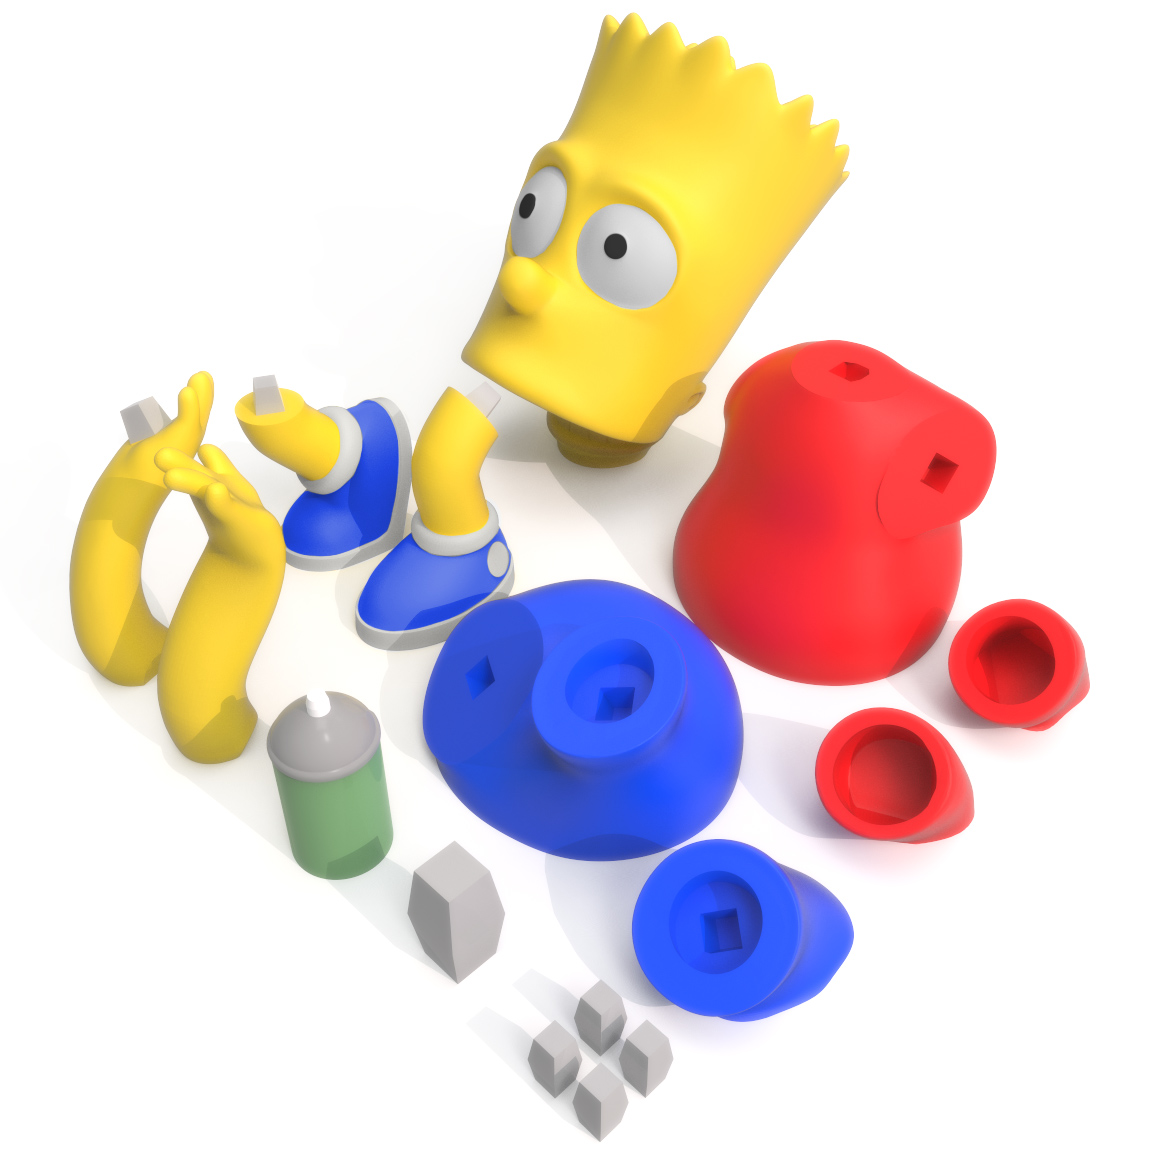 Bart Simpson Print Bed, 3D Printer Models